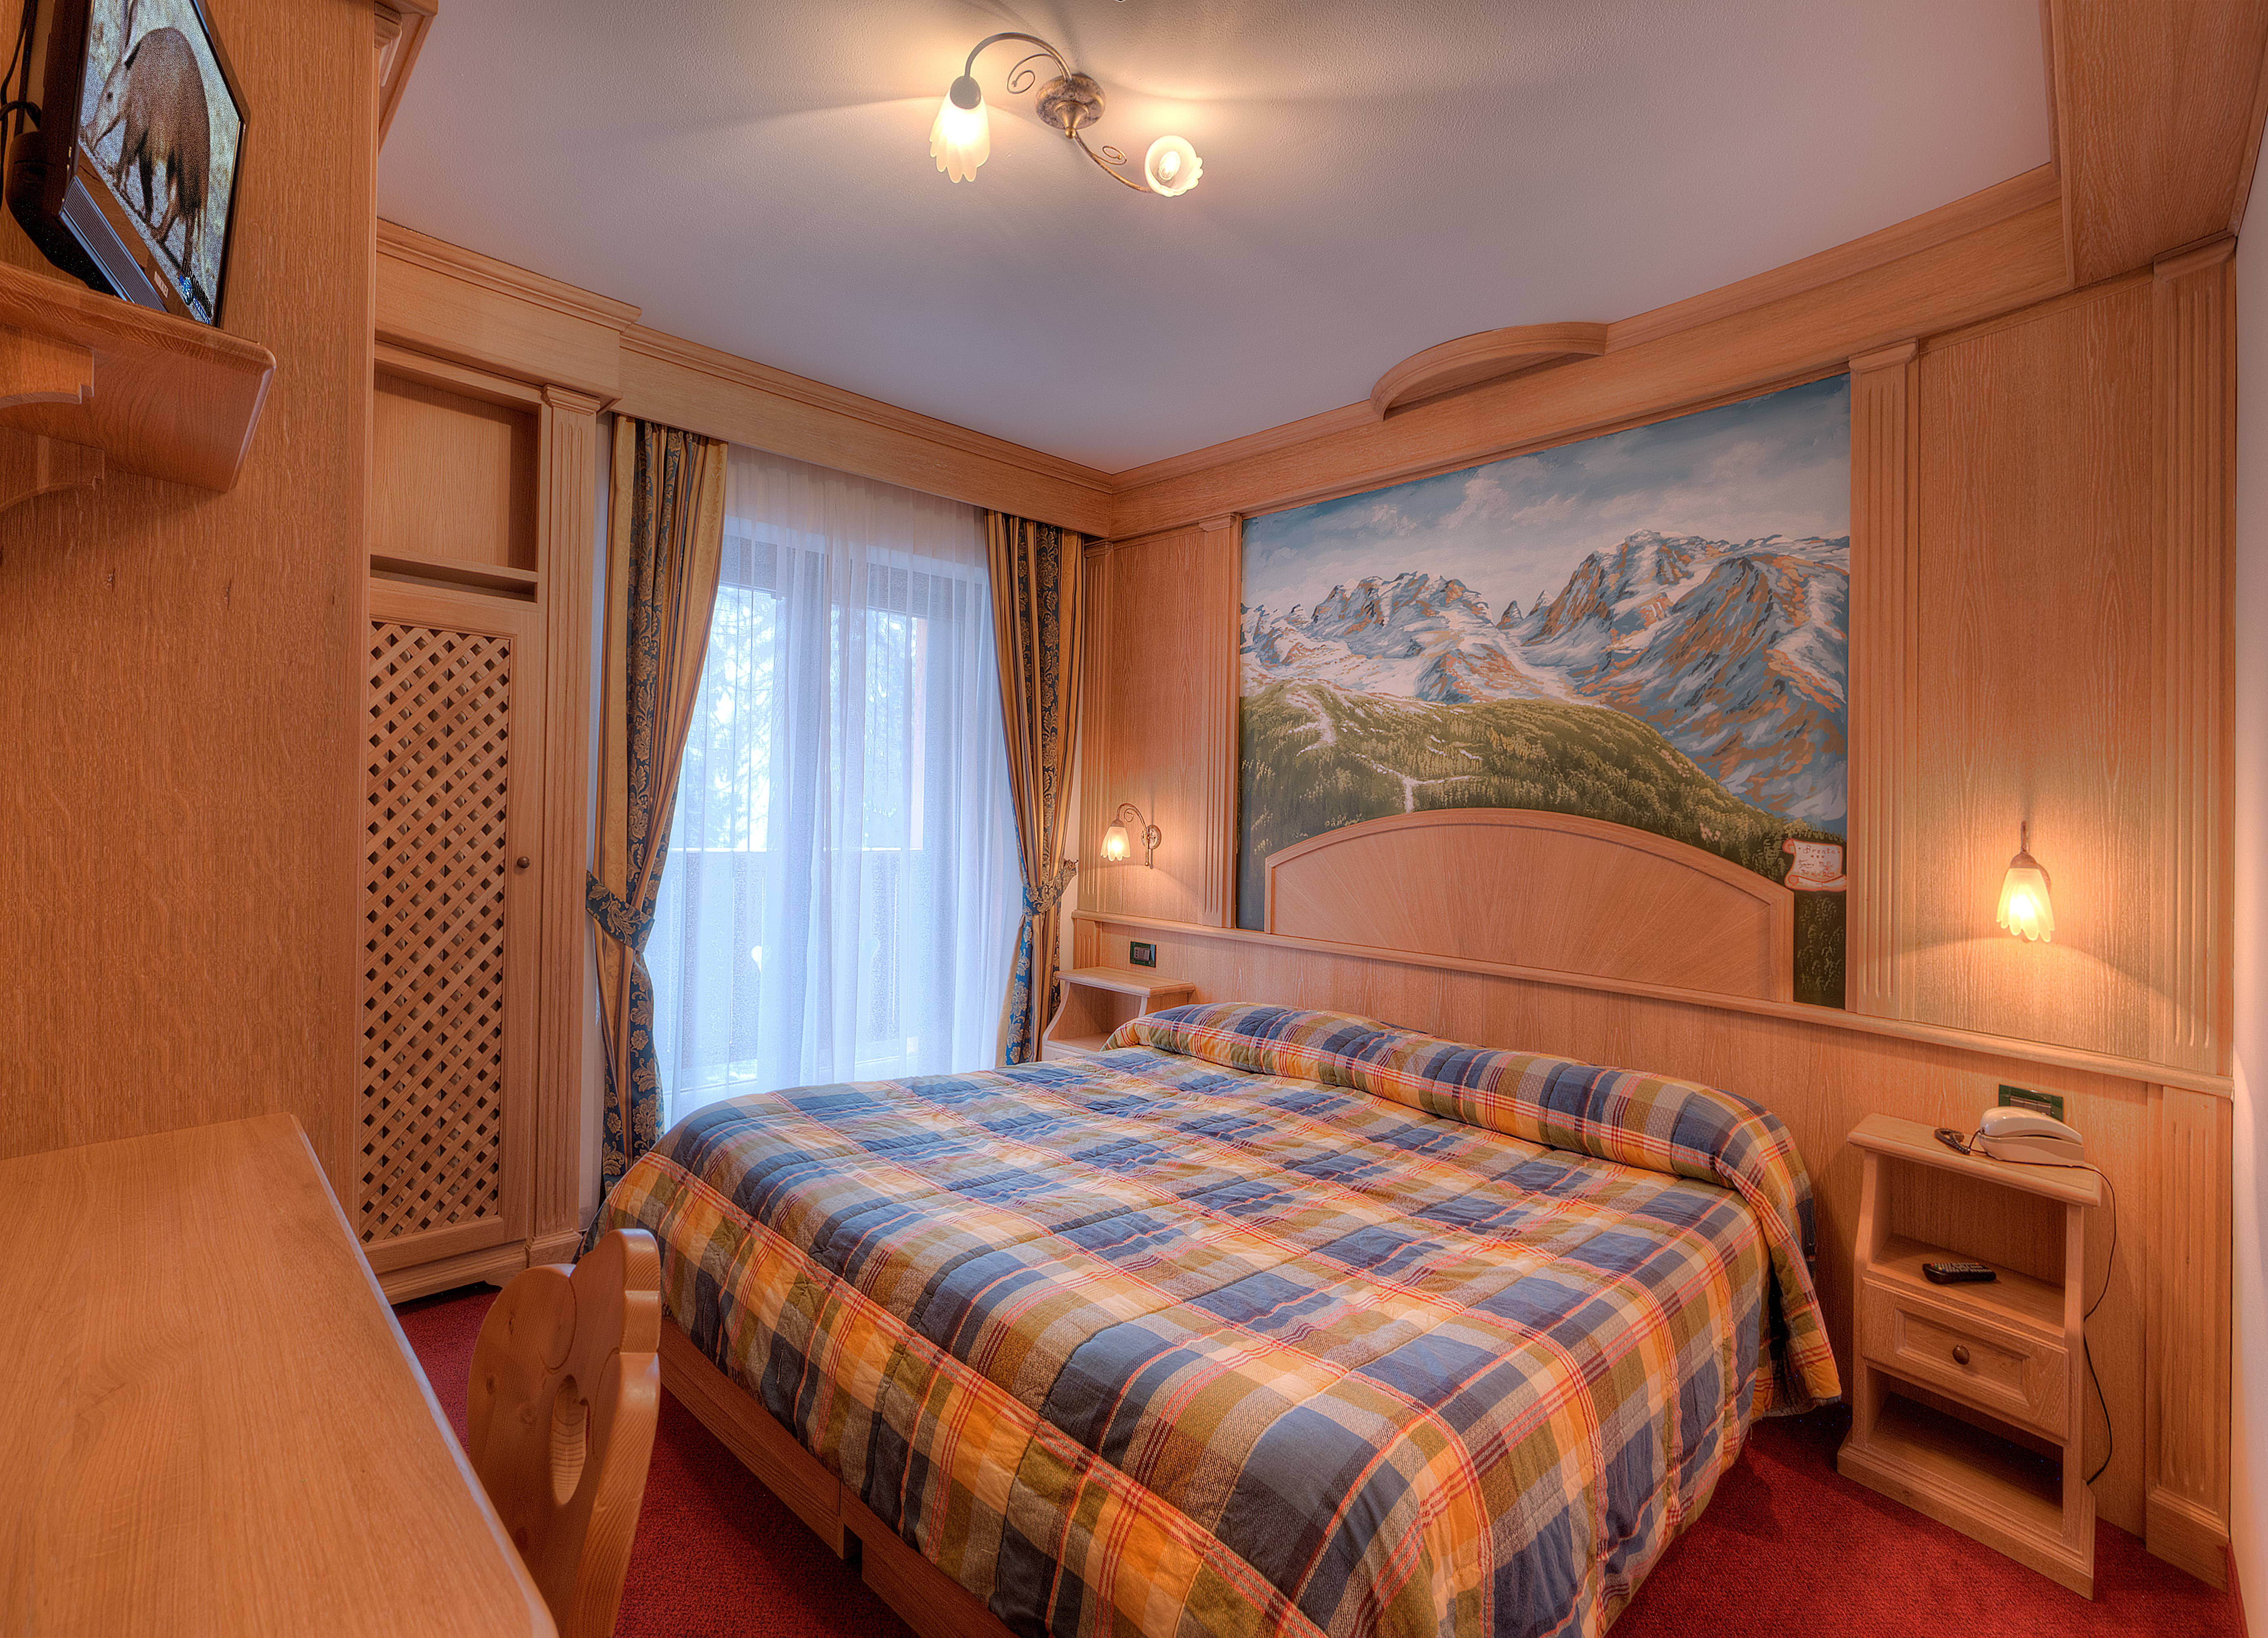 Val di Sole skipass included: Hotel Selva 3*** HB 4